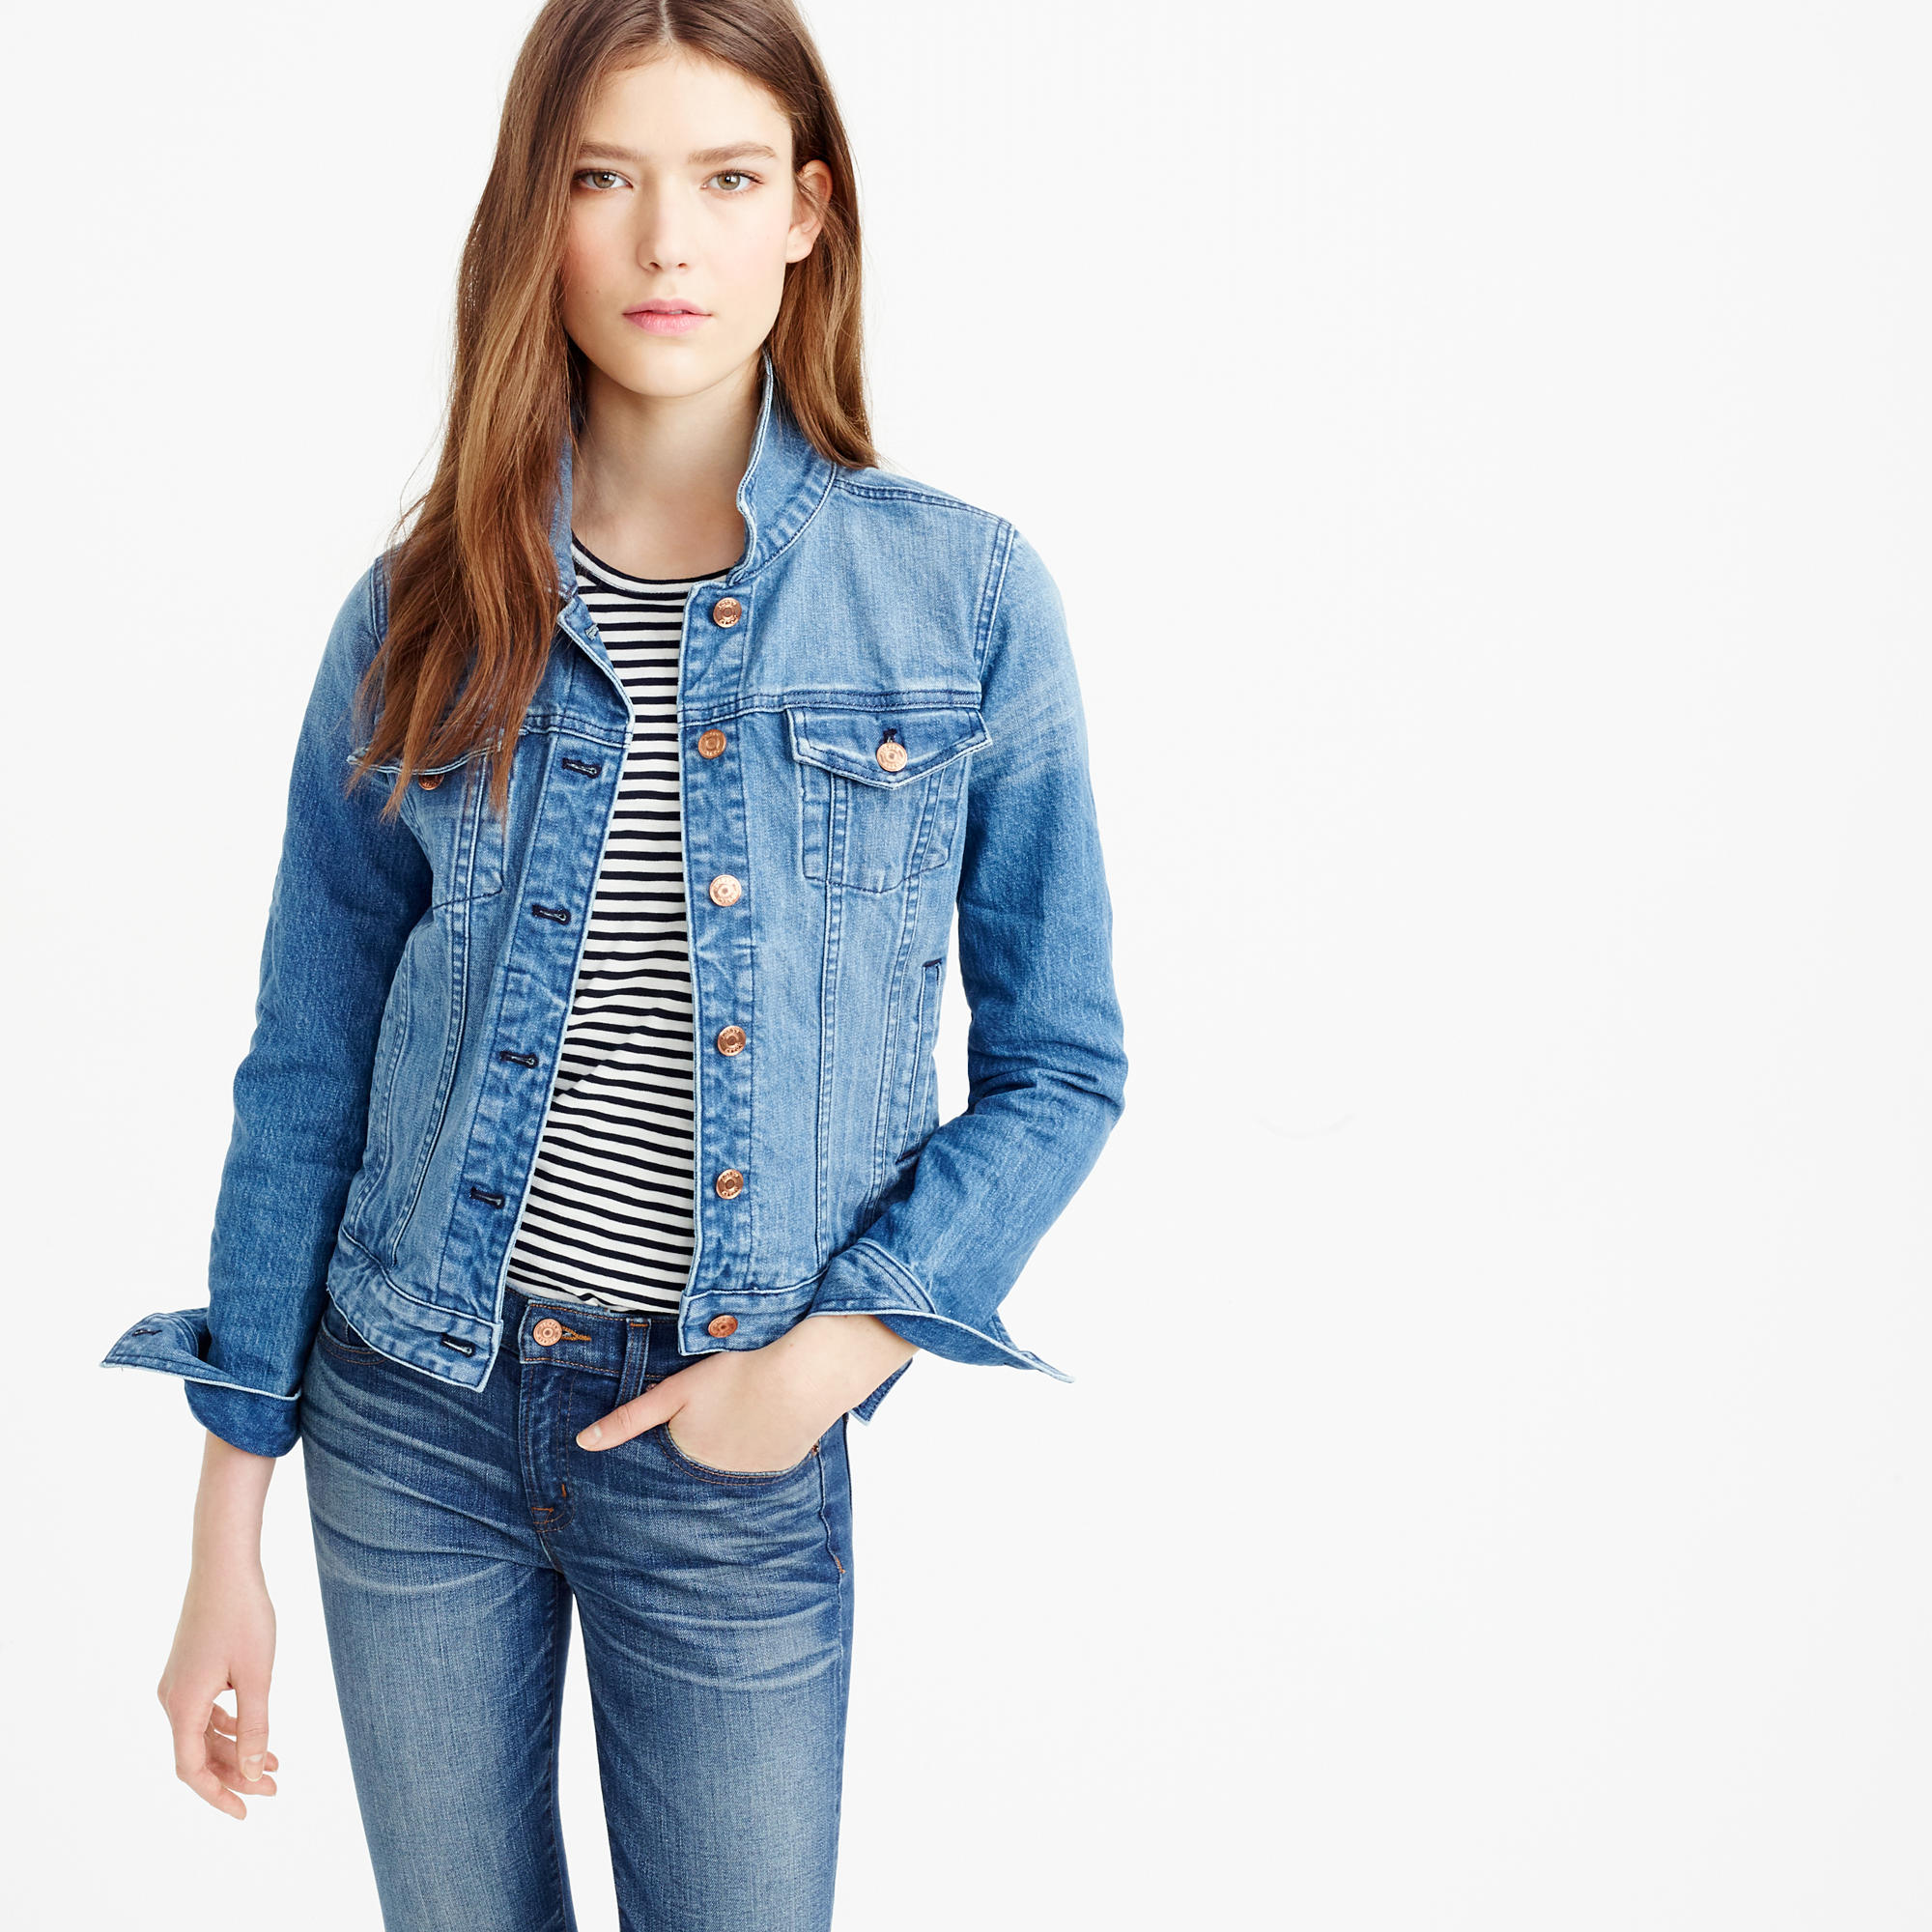 How To Stretch A Jean Jacket